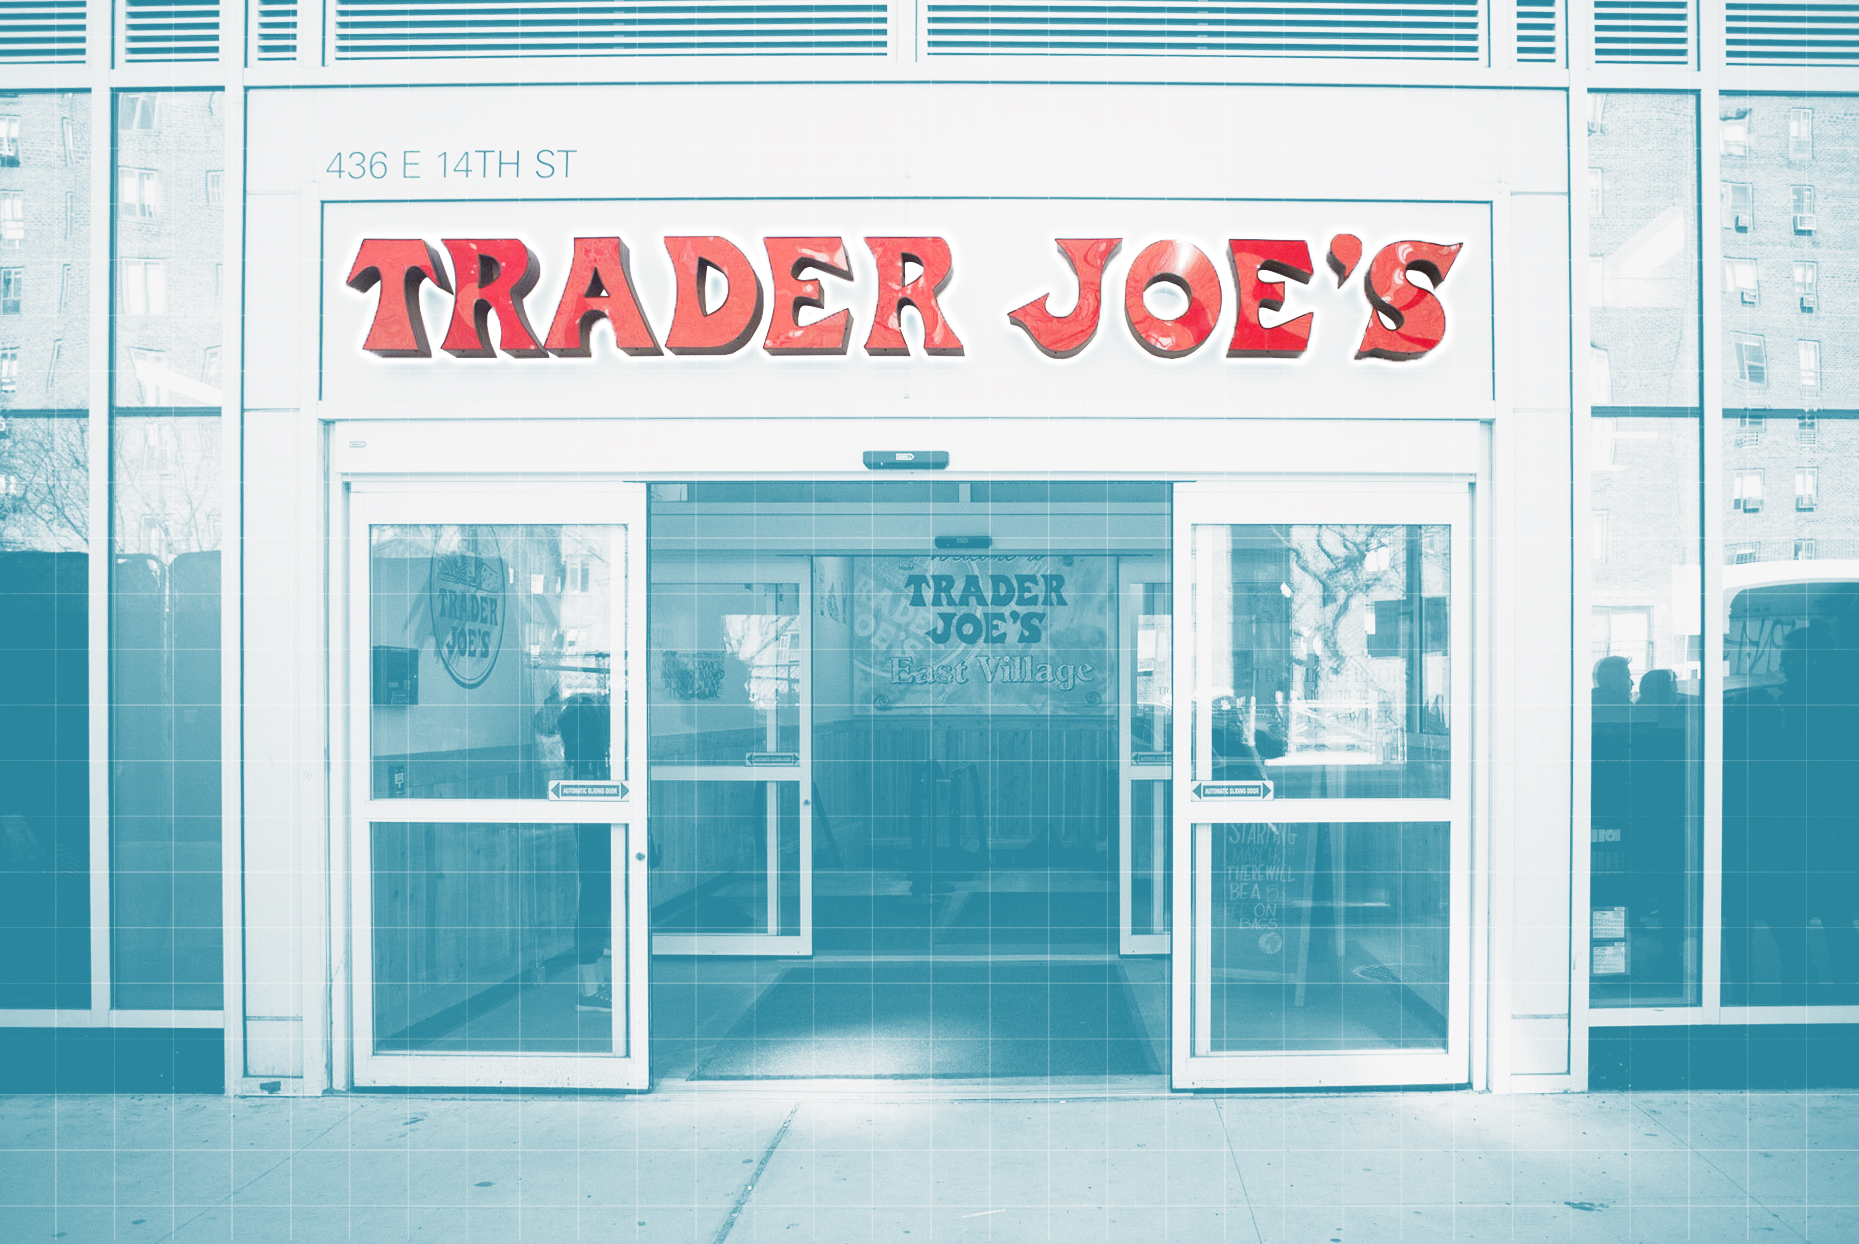 New York City Trader Joe's storefront